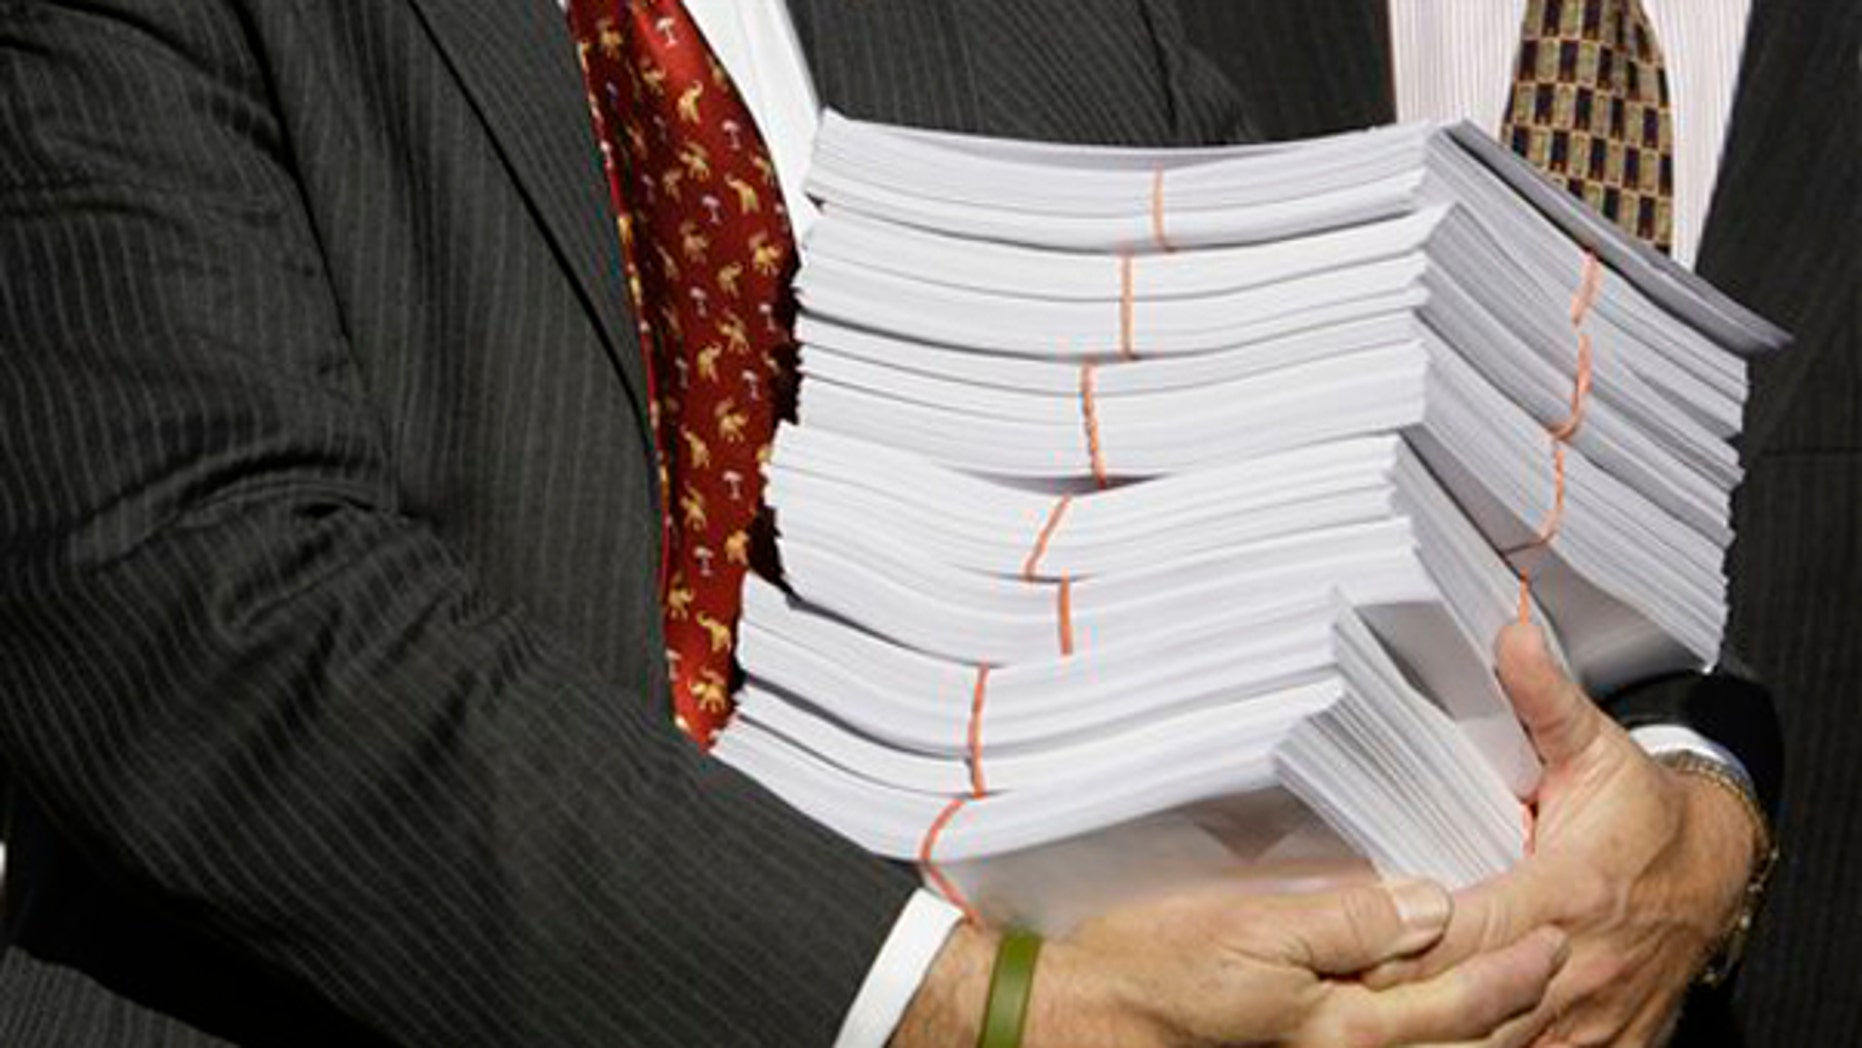 The 1,900-page House health care bill, shown here, is expected to come to the floor for debate in a matter of days. (AP Photo)